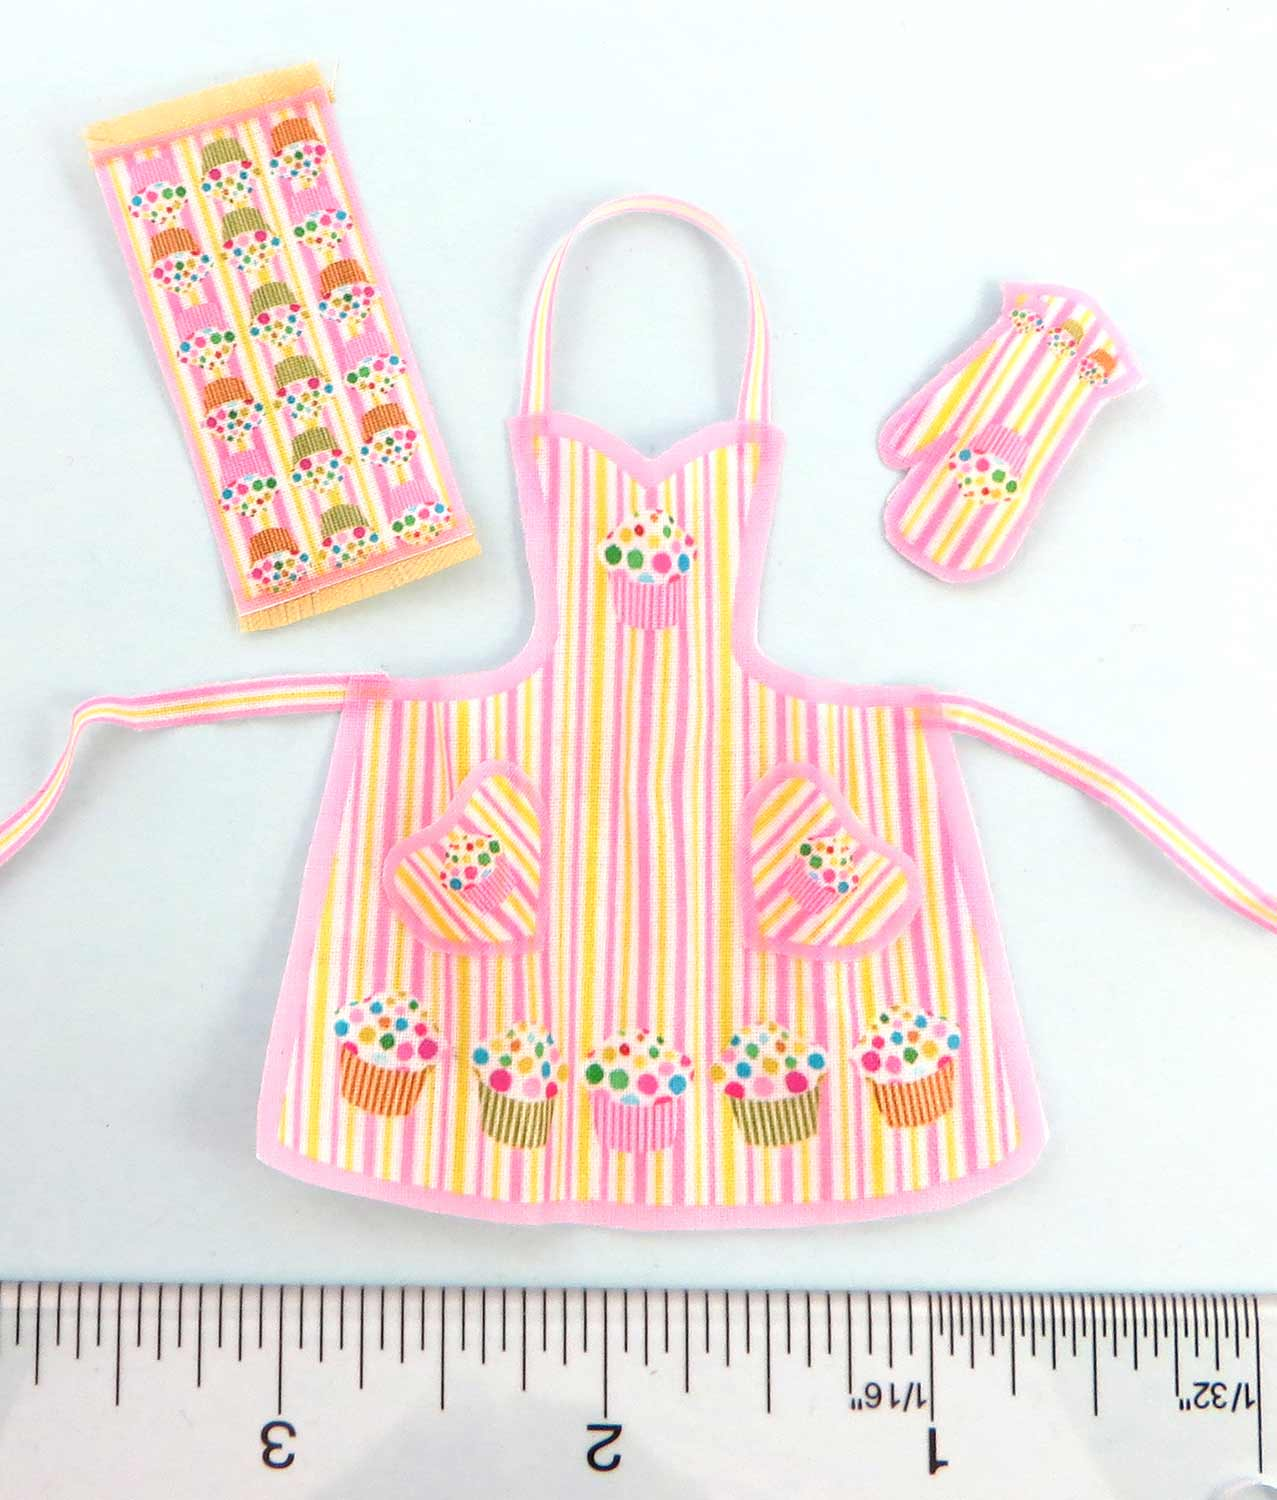 Household/Apron Outfit Kits Twelfth Scale Kits 1:12